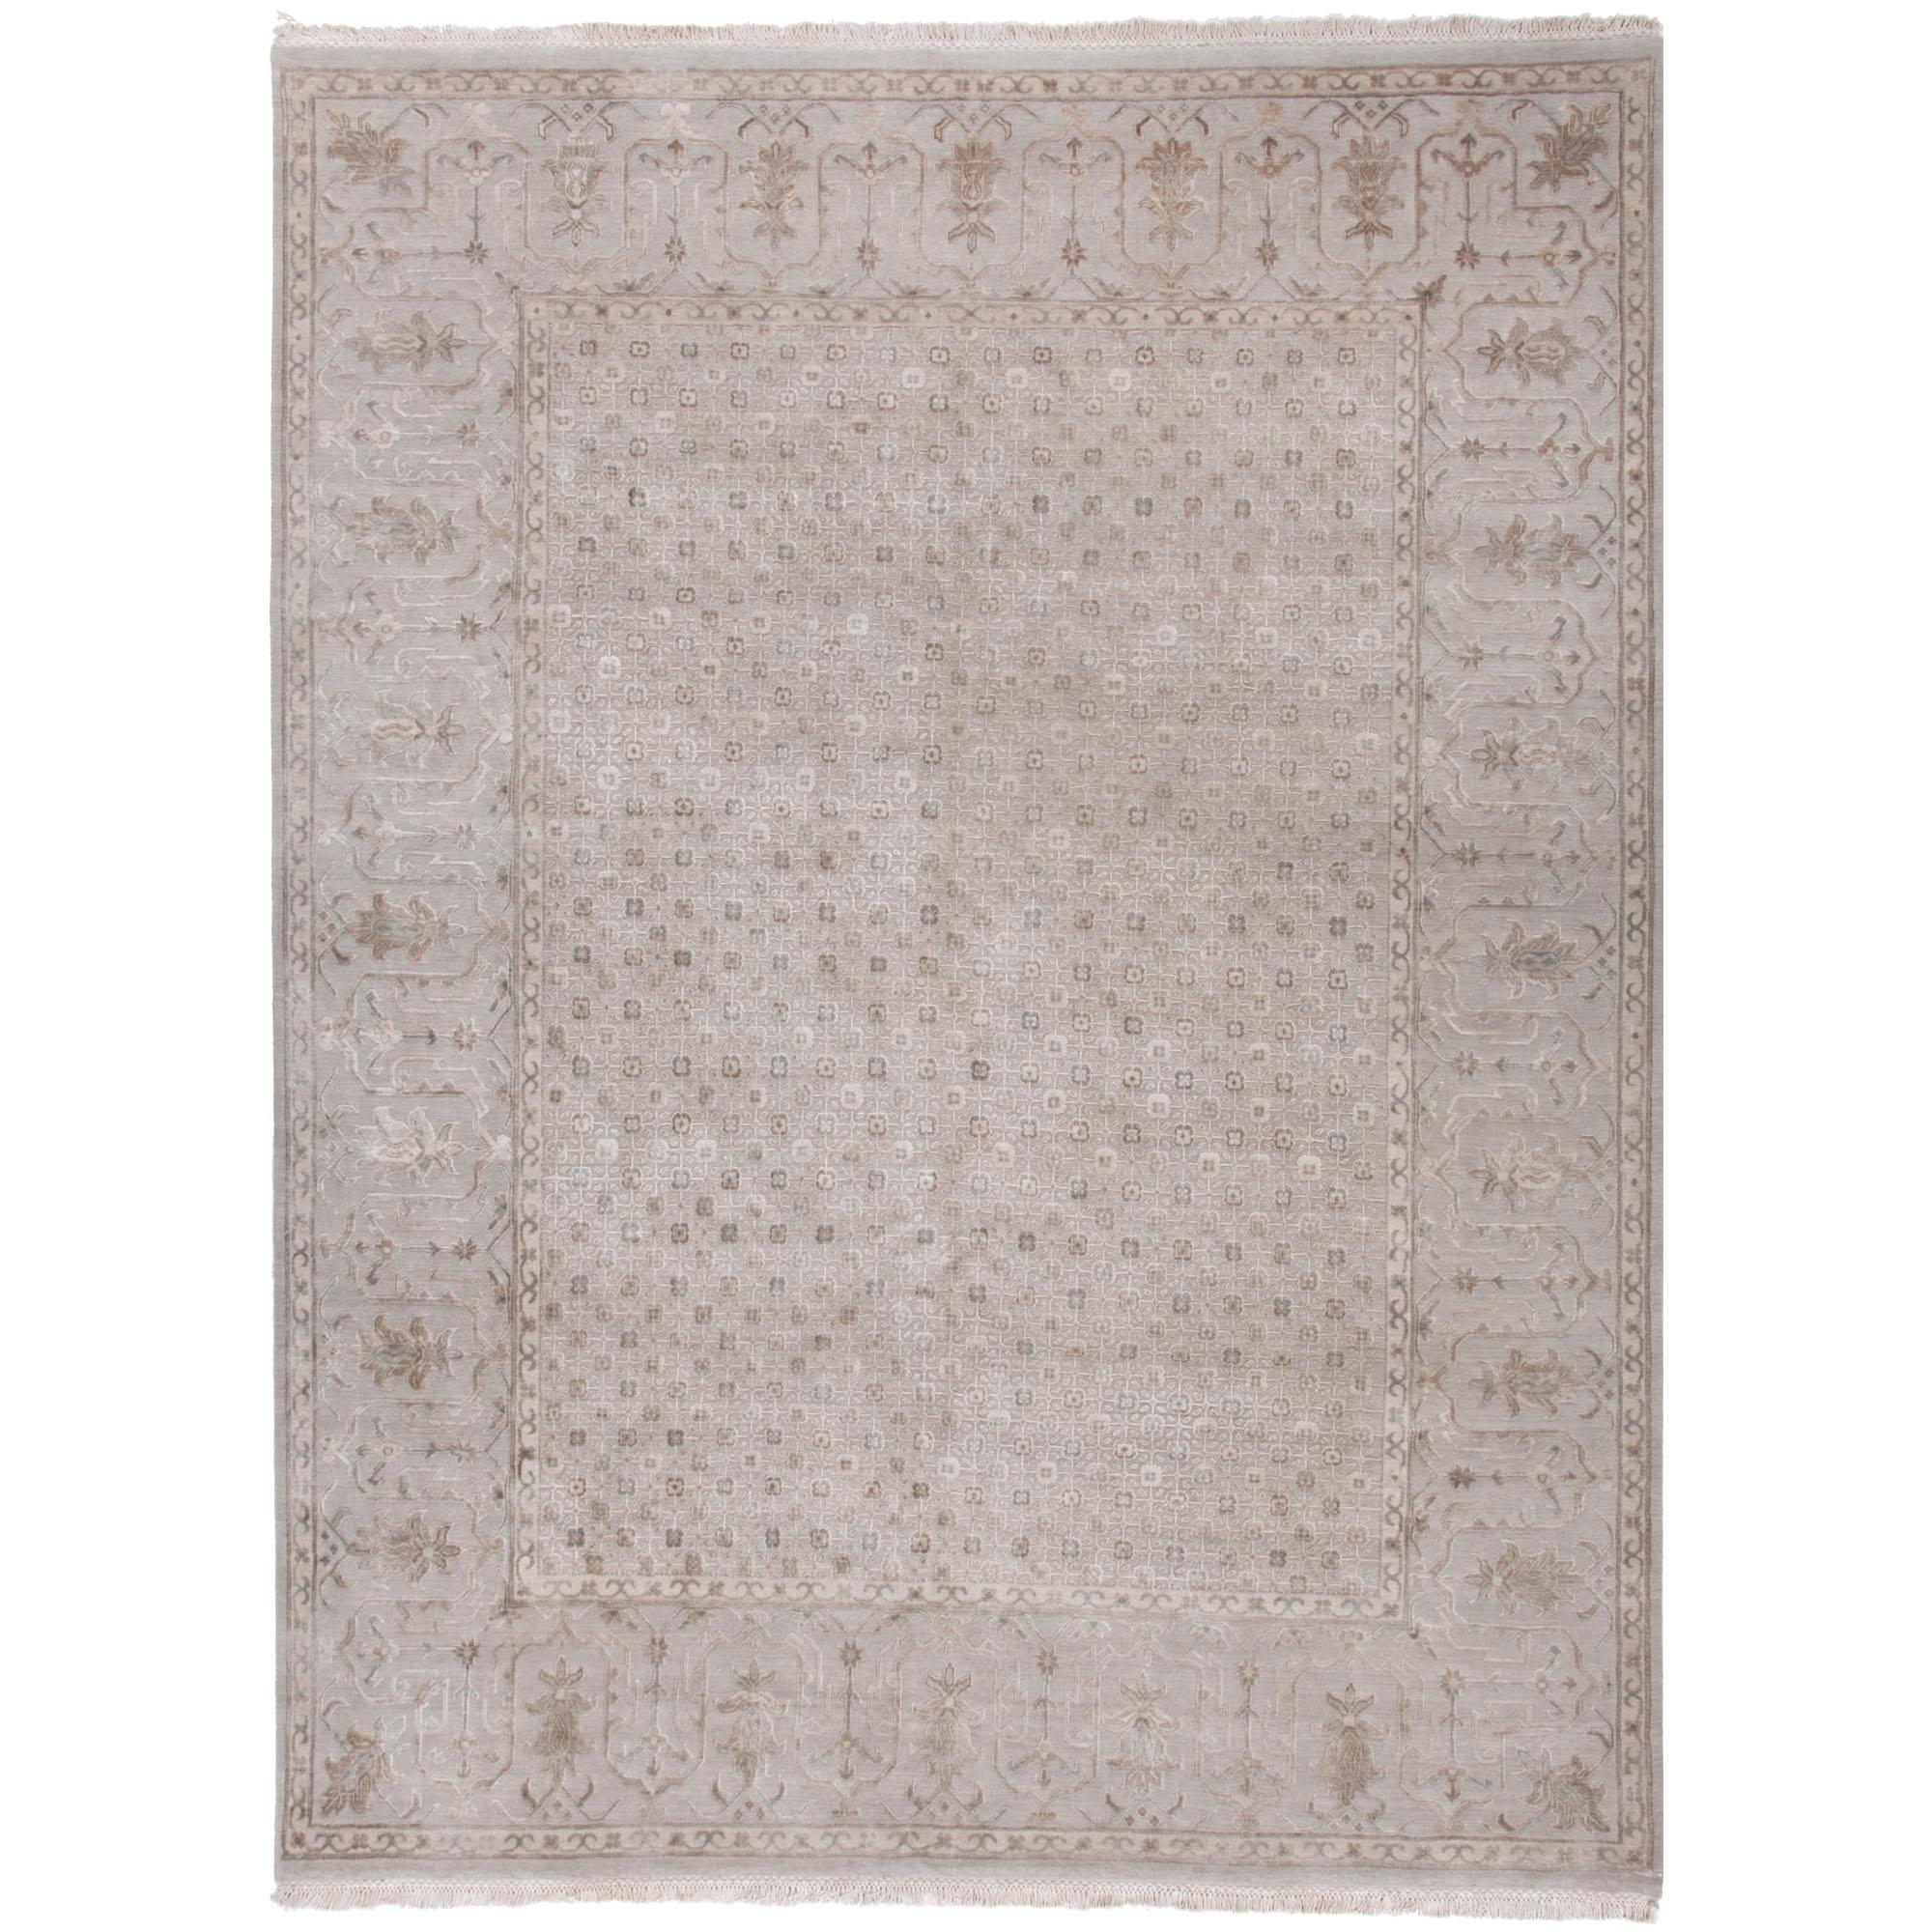 JAIPUR Rugs Connextion By Jenny Jones-signature 8 x 10 Rug - Item Number: RUG101354